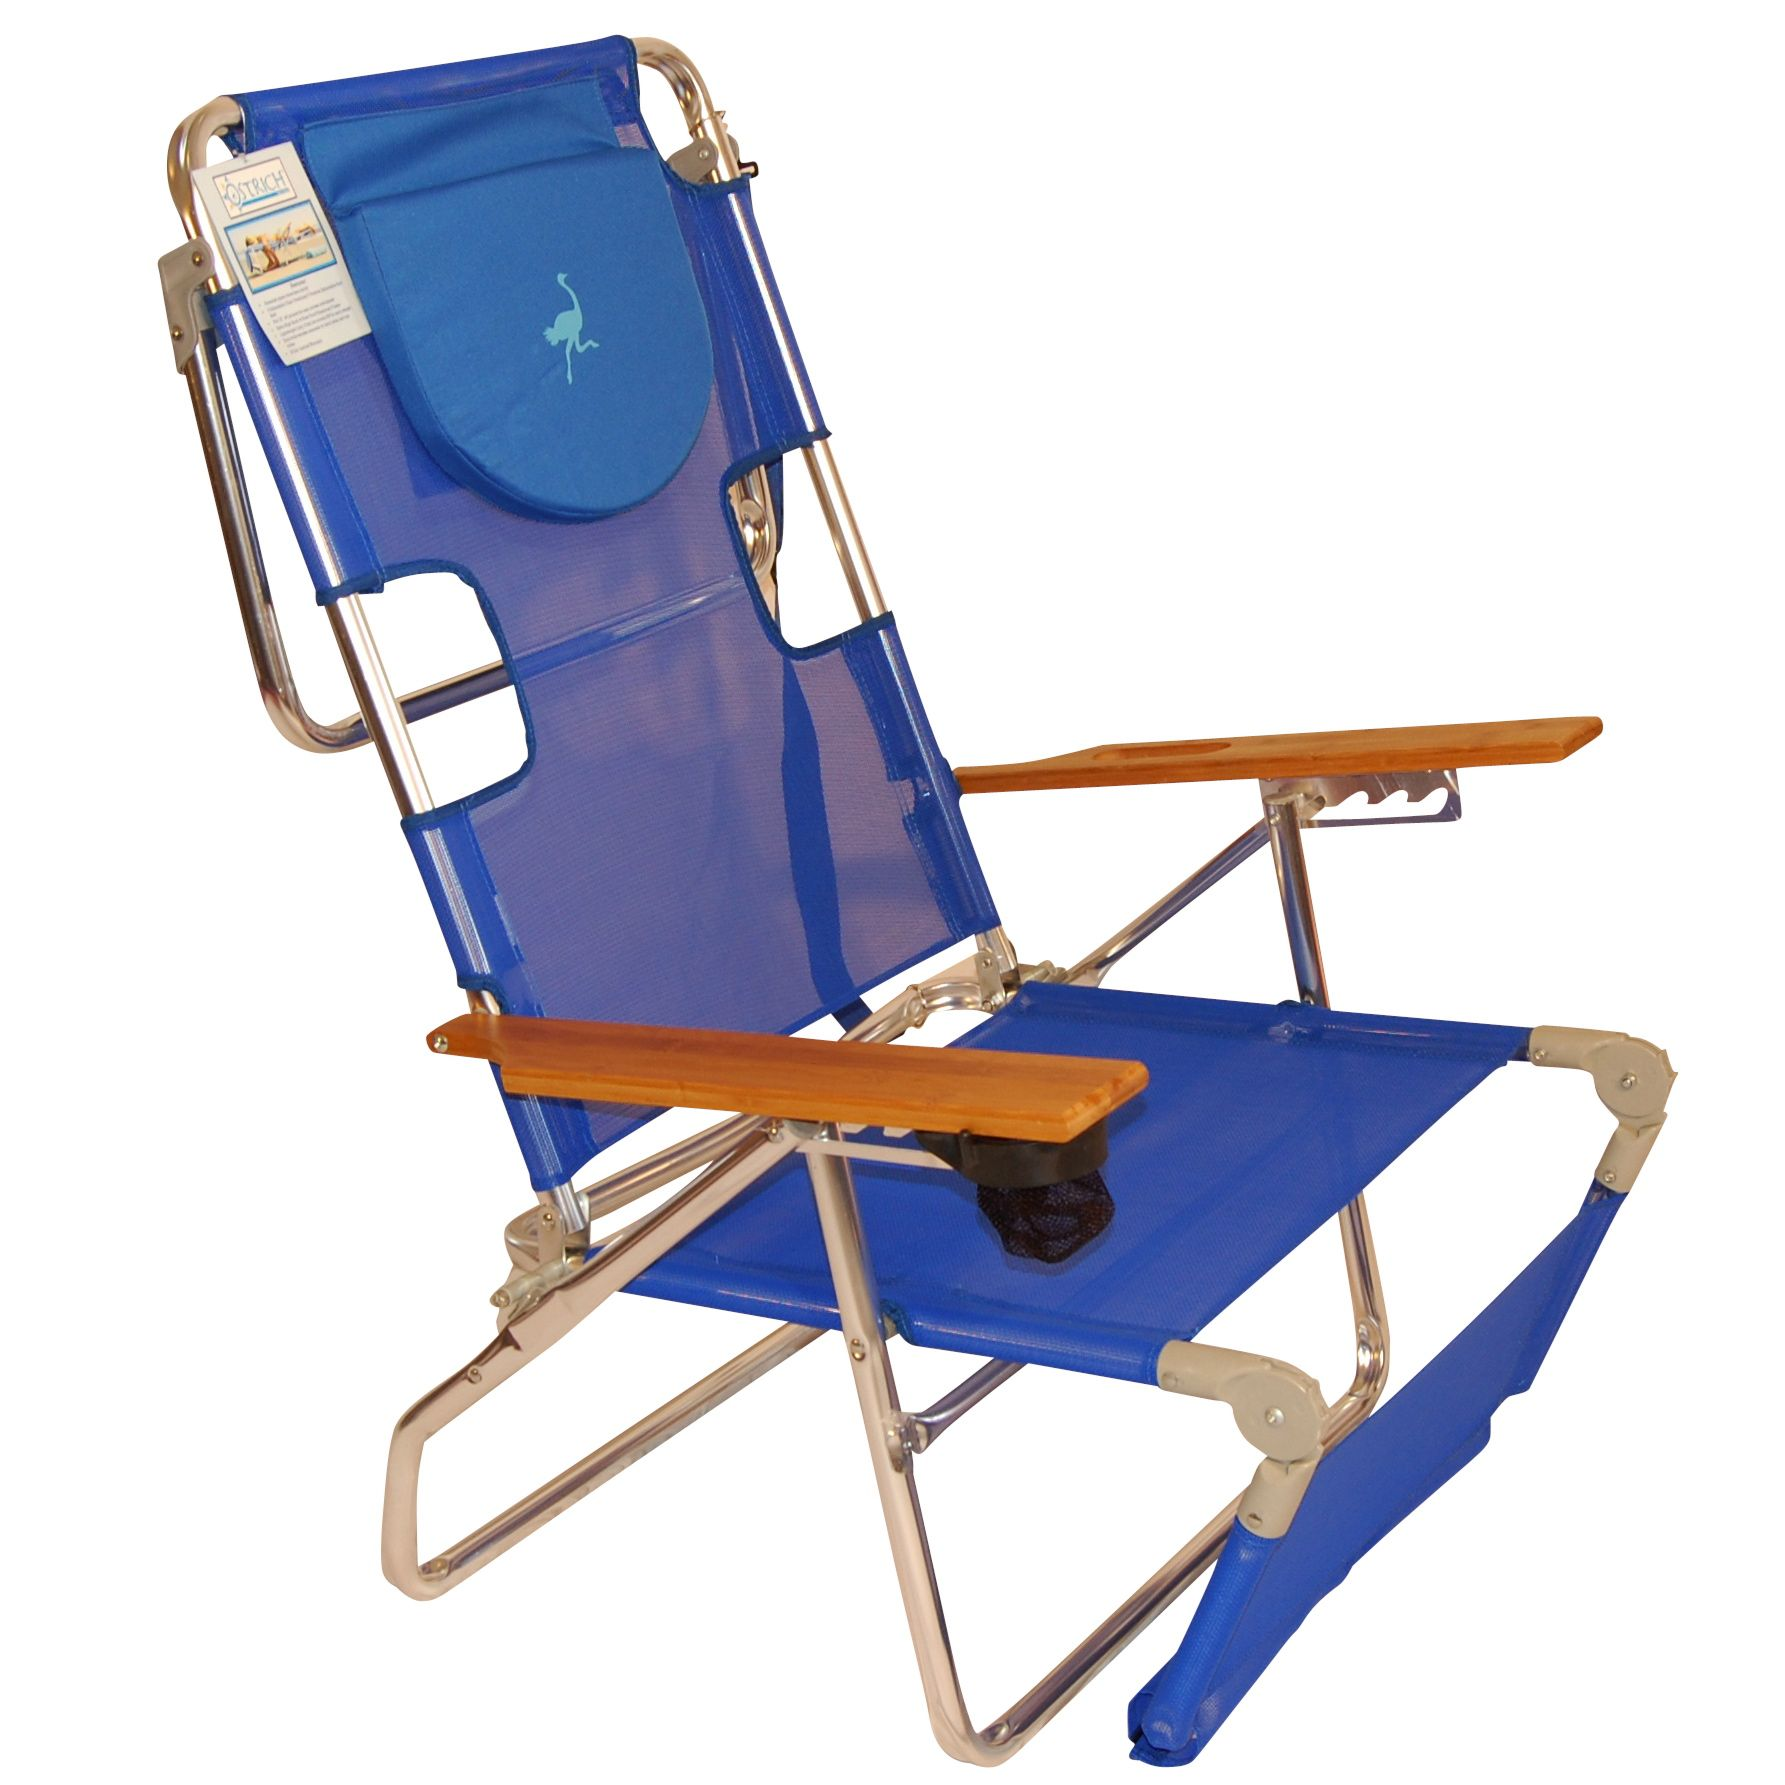 portable garden chairs folding camping chair in Spain